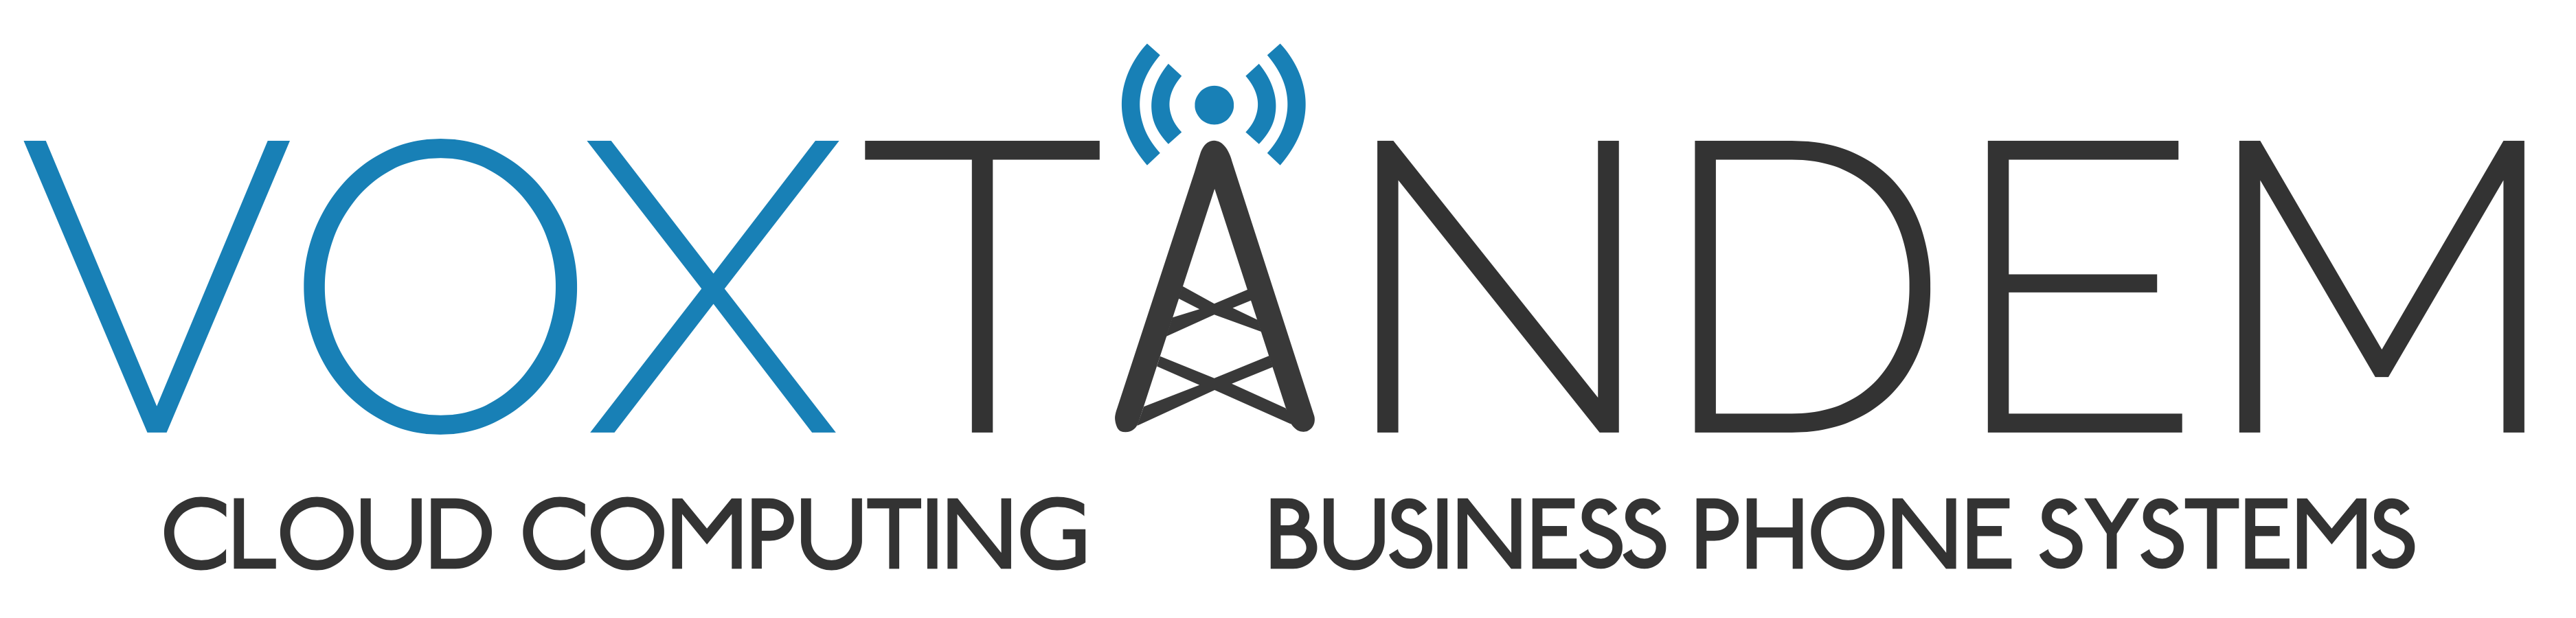 Vox Tandem Cloud Computing Business Phone Systems